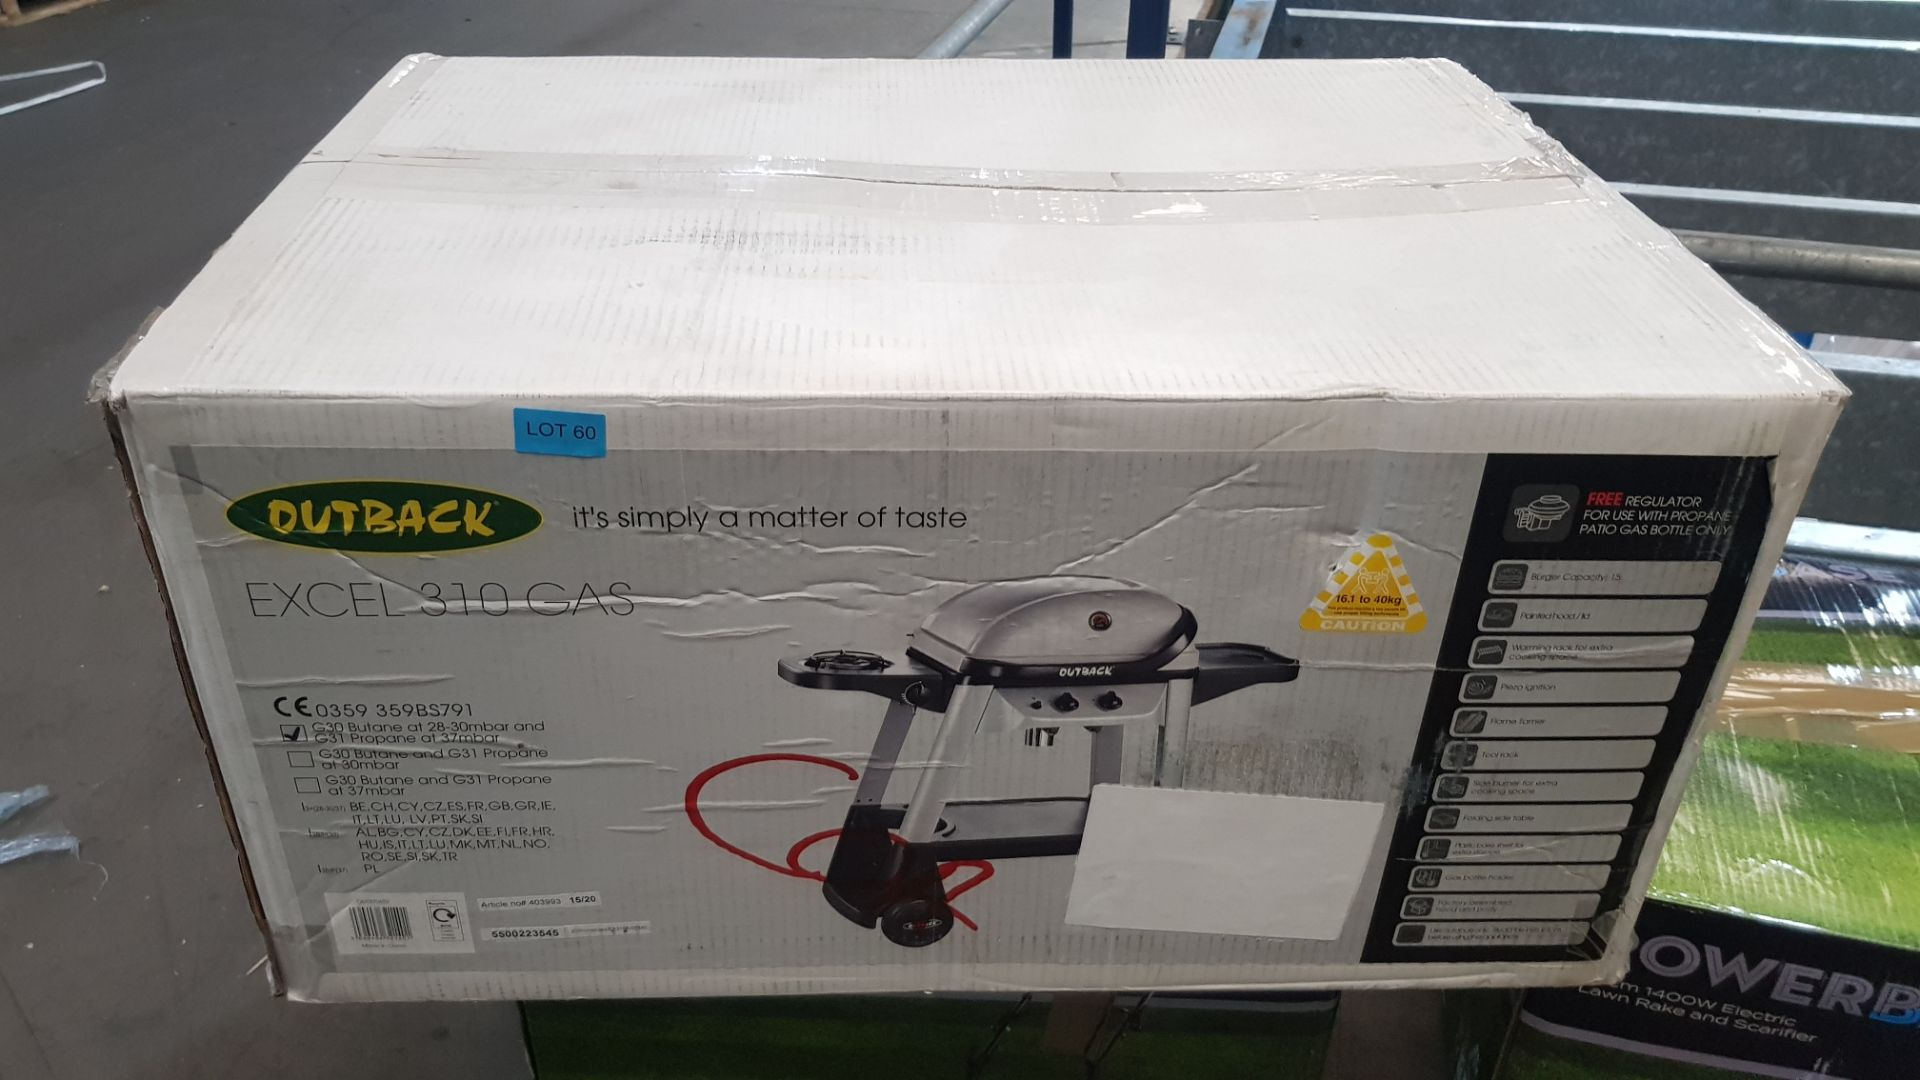 (P6) 1x Outback Excel 310 Gas BBQ Silver RRP £100. New, Sealed Unit, With Damage To Box On One Side - Image 2 of 5